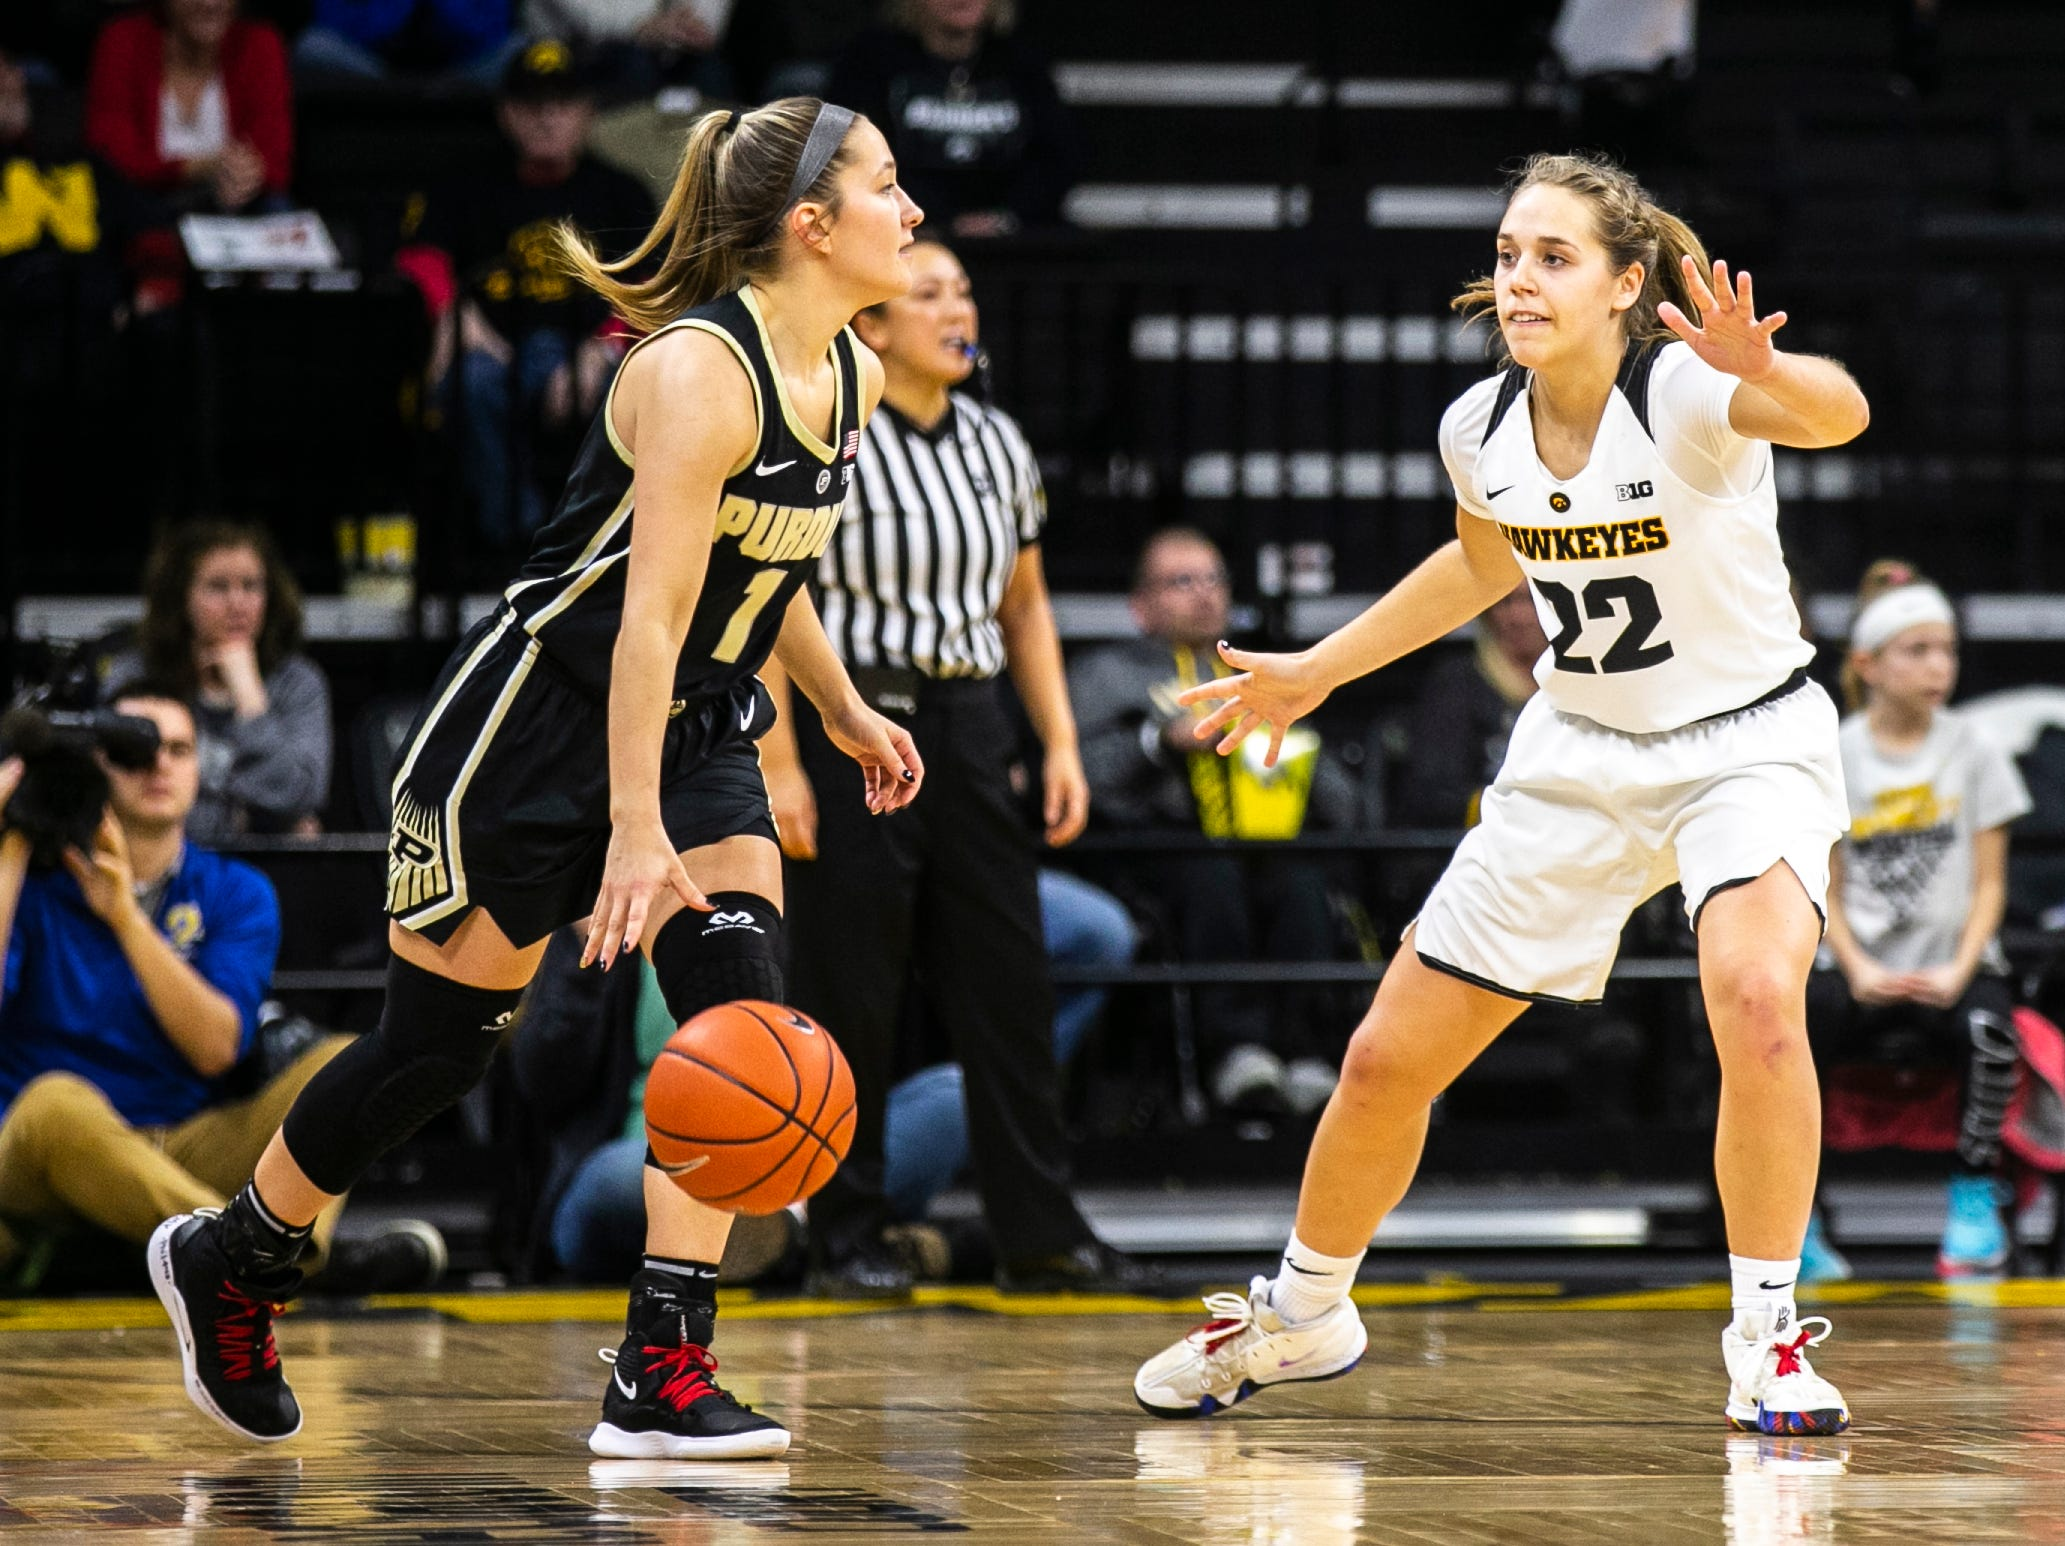 Iowa guard Kathleen Doyle (22) defends Purdue guard Karissa McLaughlin (1) during a NCAA Big Ten Conference women's basketball game on Sunday, Jan. 27, 2019, at Carver-Hawkeye Arena in Iowa City, Iowa.